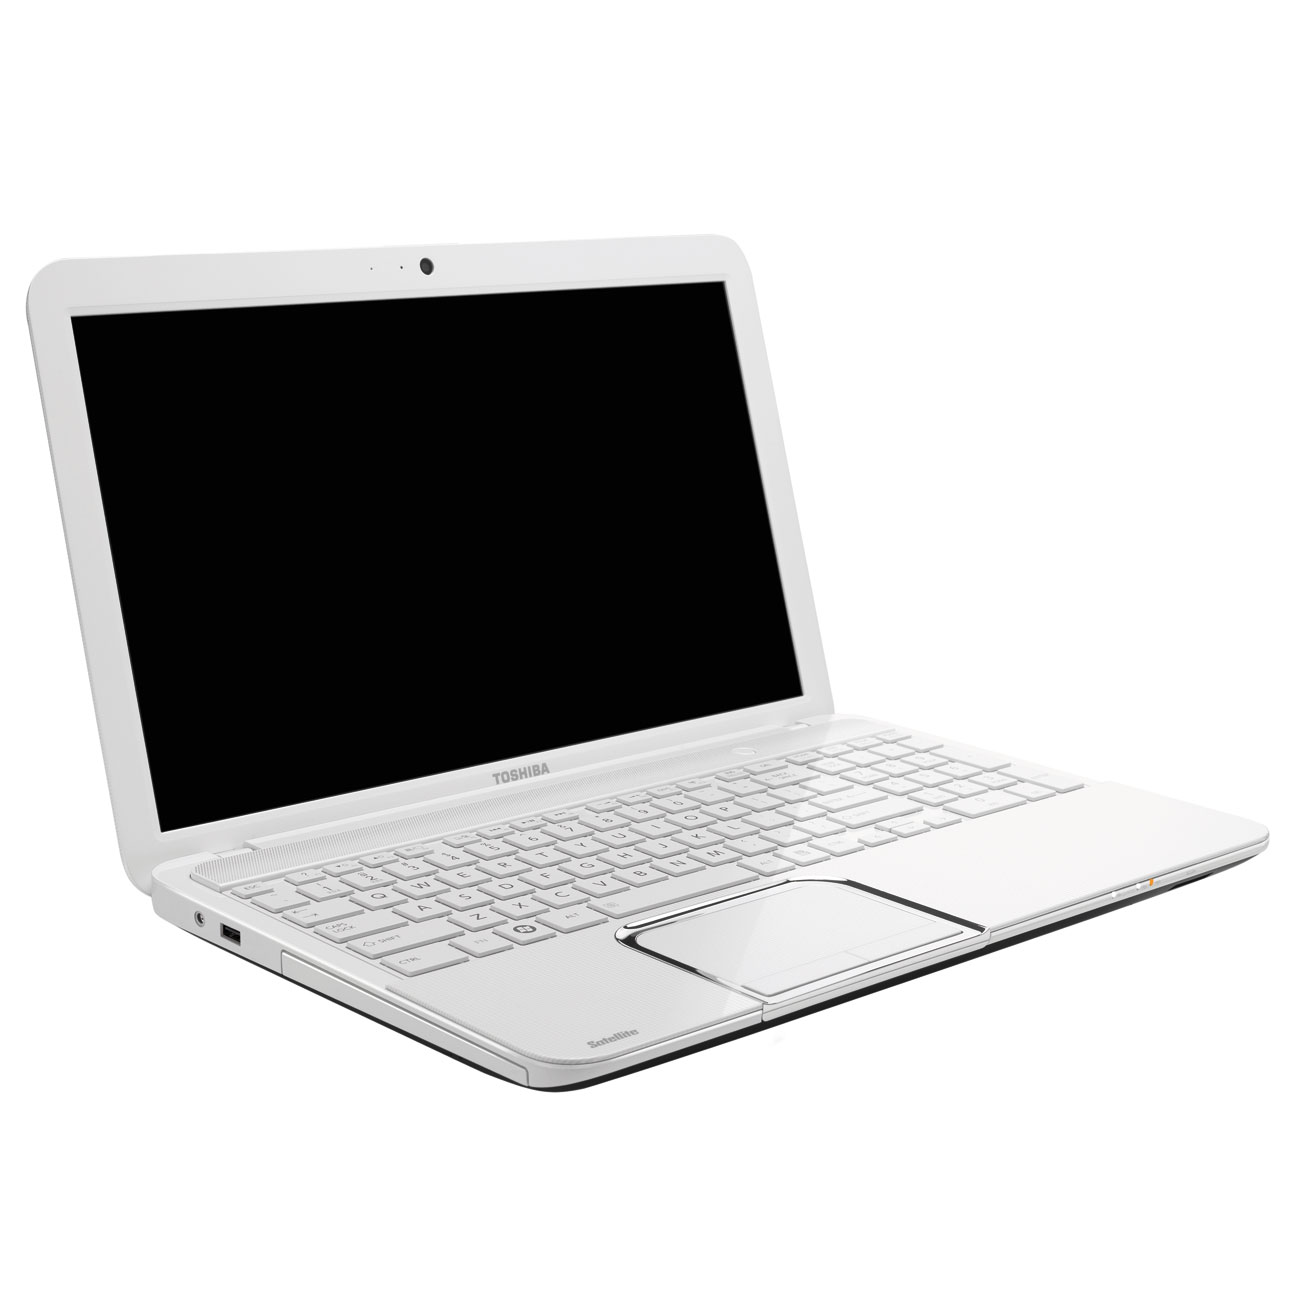 toshiba satellite l850 15z blanc pc portable toshiba sur. Black Bedroom Furniture Sets. Home Design Ideas